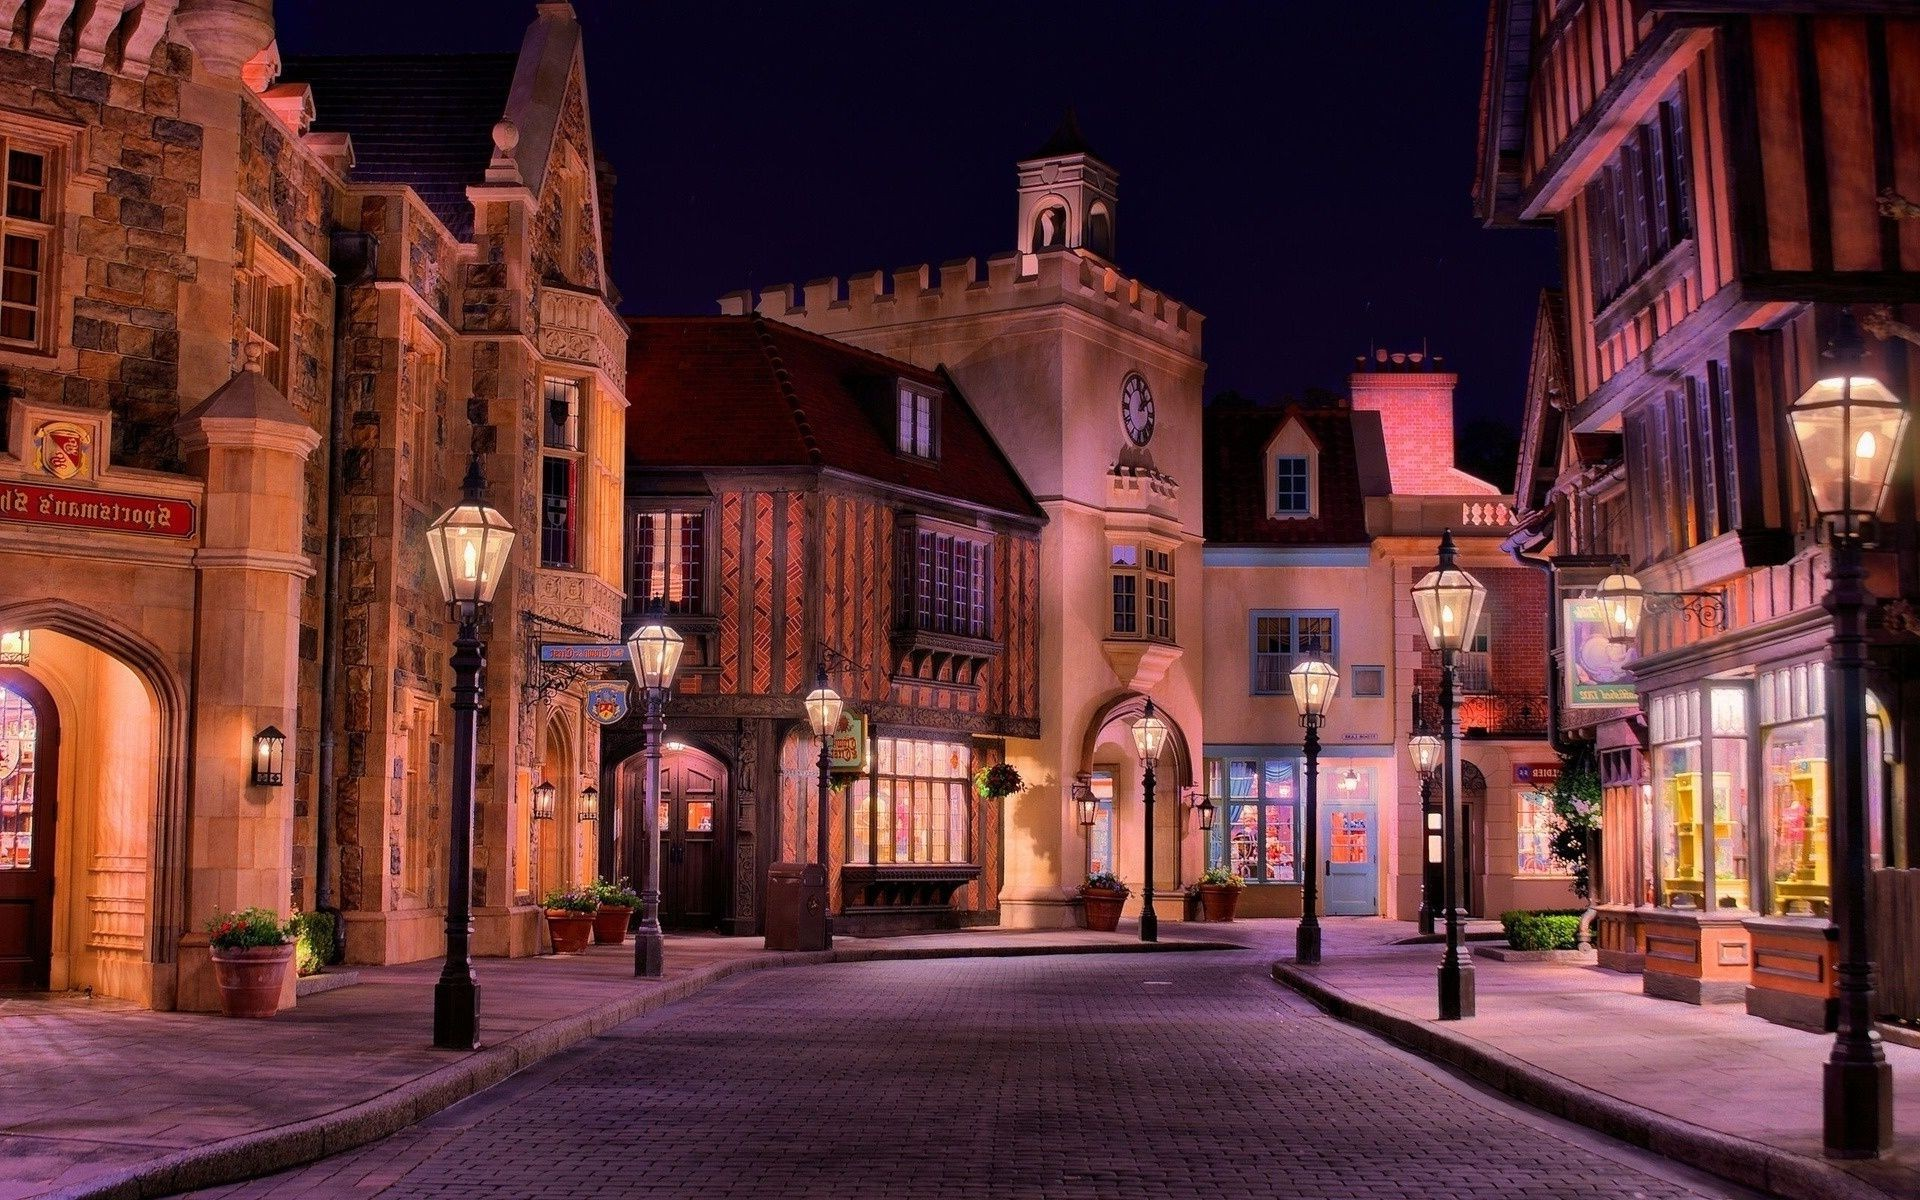 ancient architecture architecture travel city street outdoors evening dusk building illuminated town